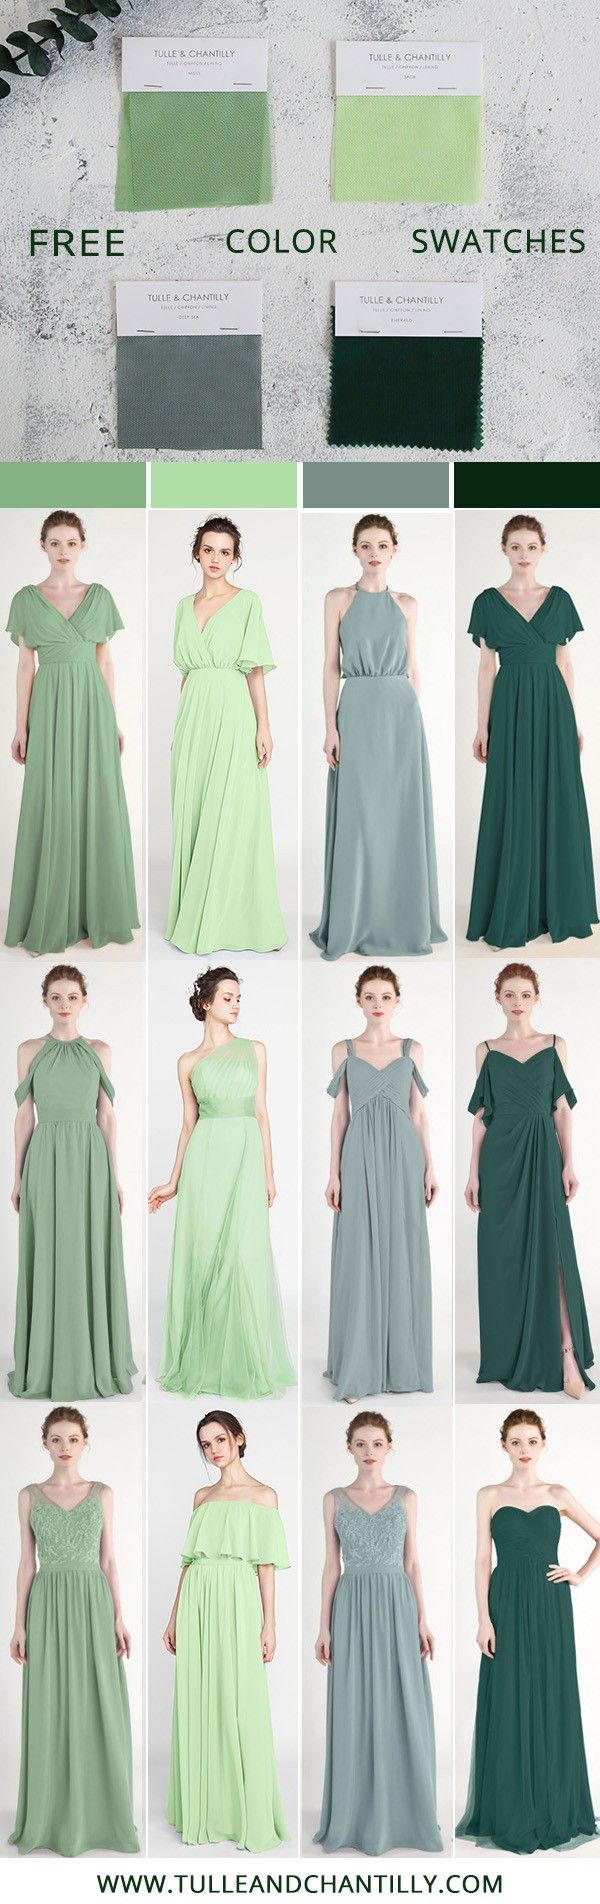 Tulle And Chantilly Bridesmaid Dress Swatch Kits Bridesmaid Dresses Long Chiffon Dress Swatch Custom Bridesmaid Dress